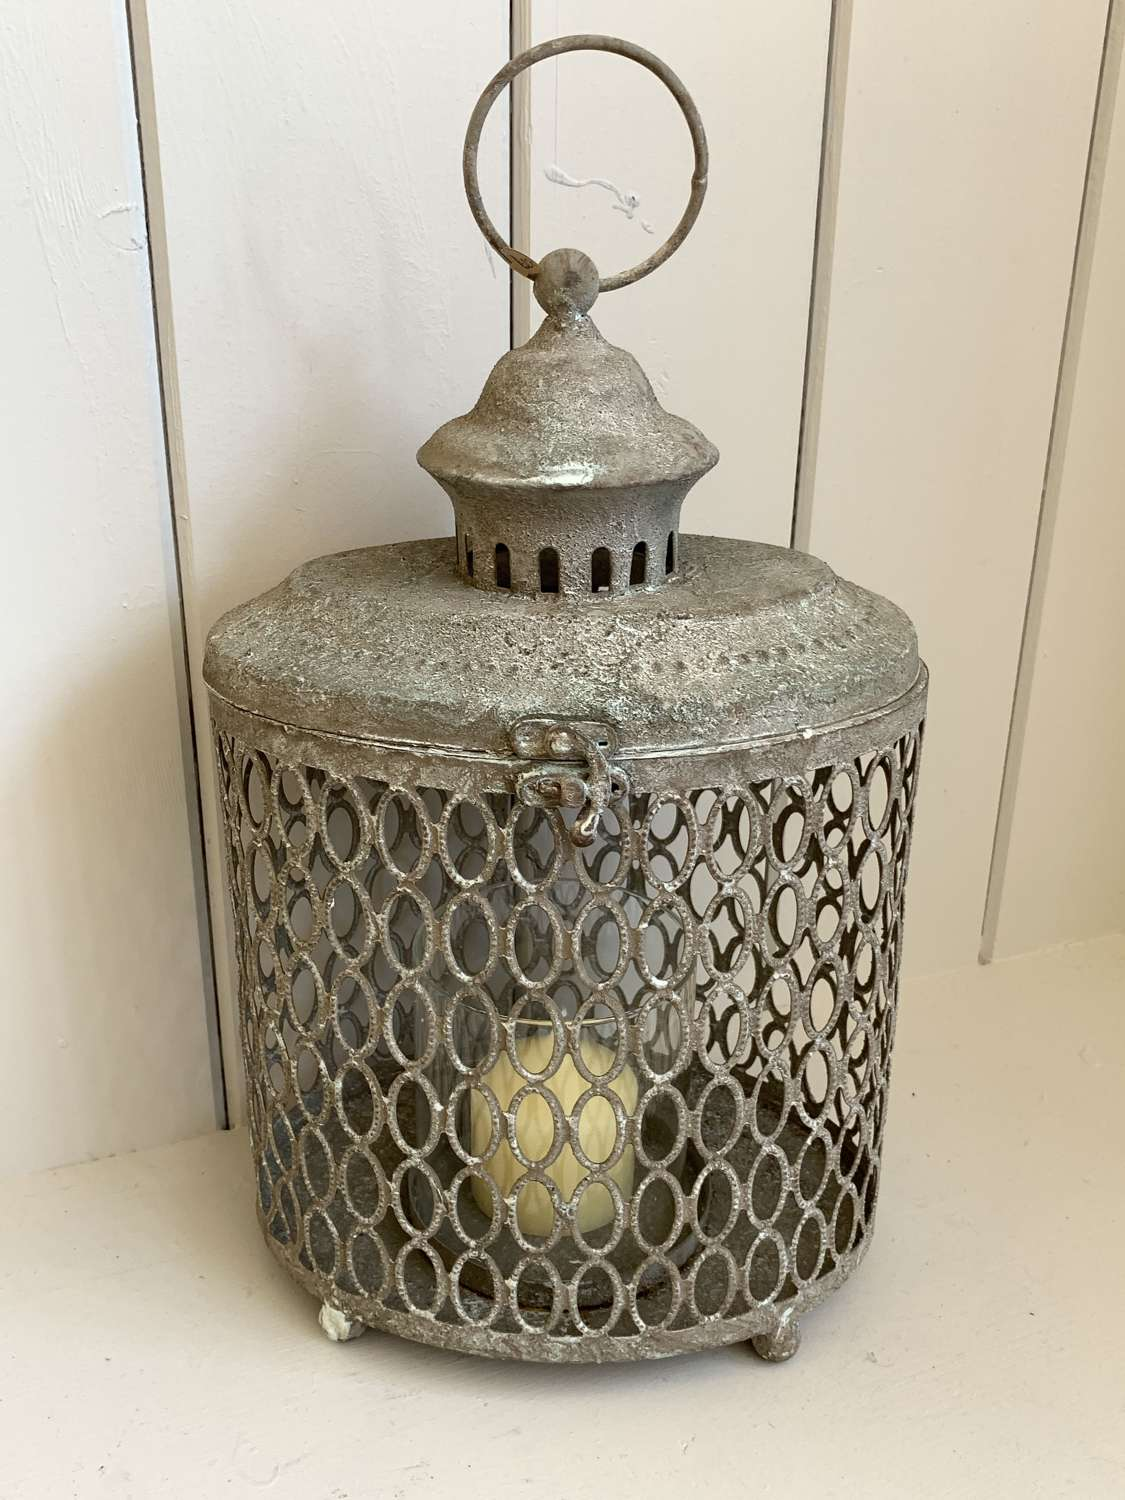 Rustic lantern with glass candleholder